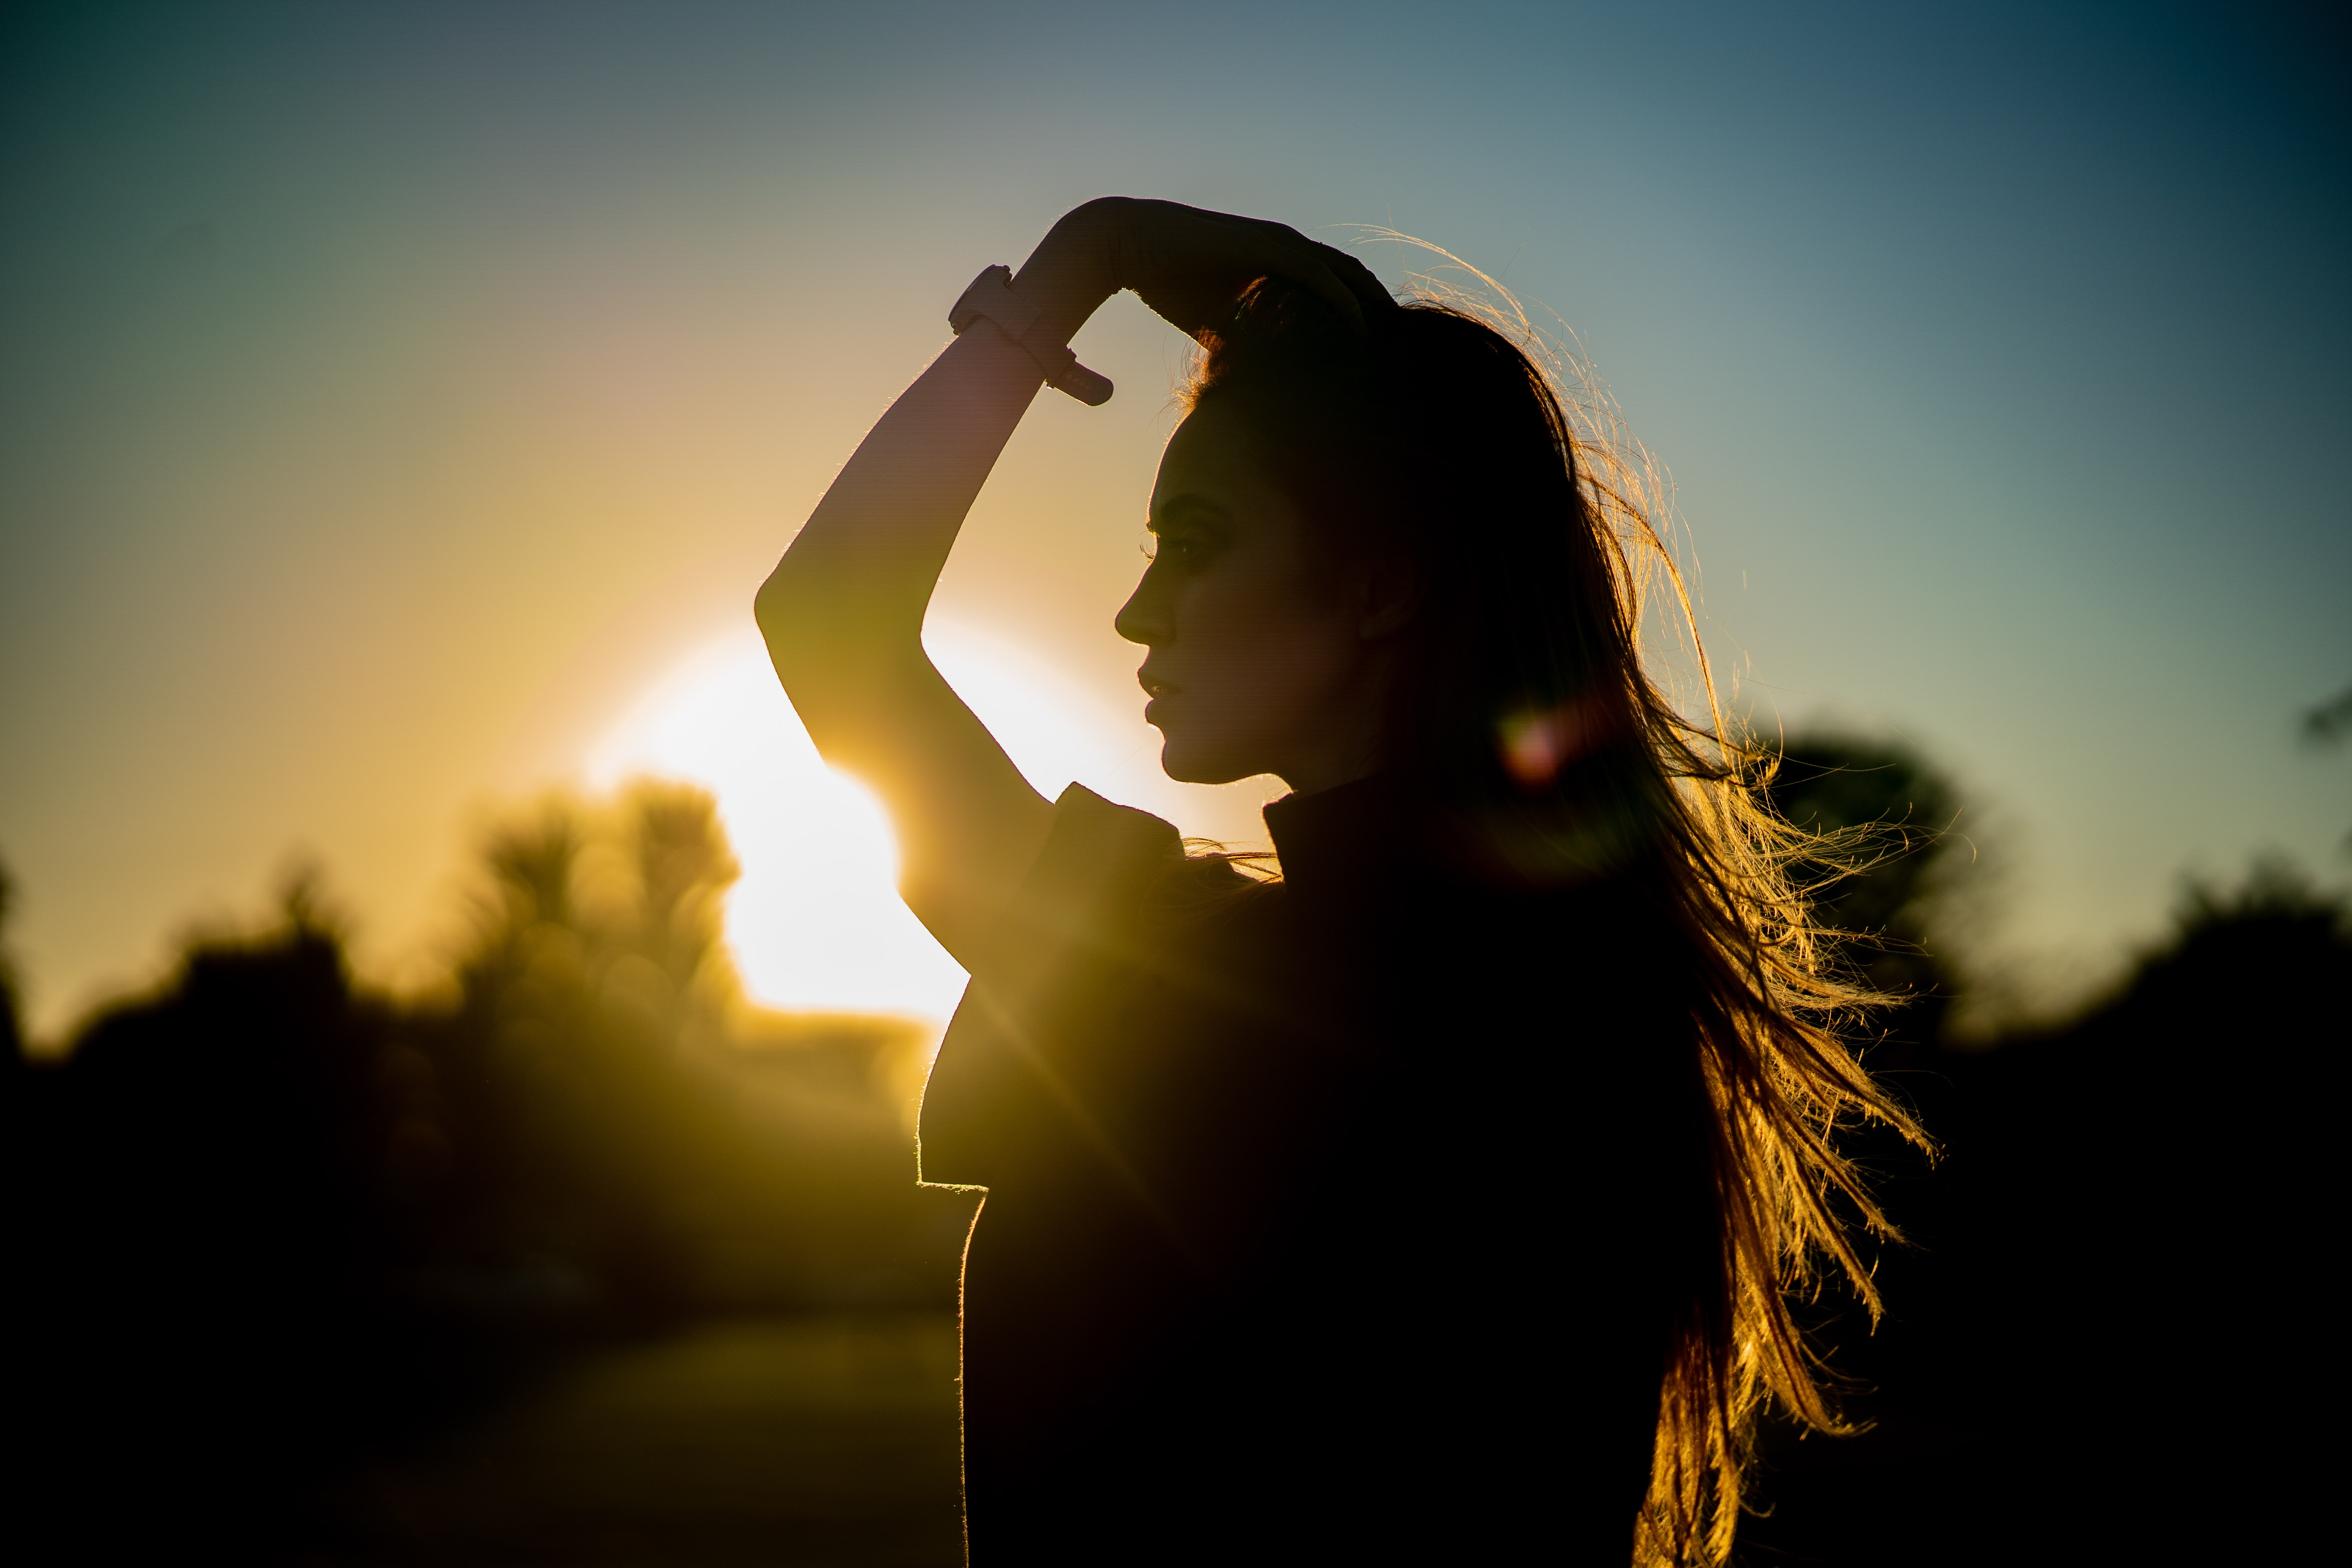 silhouette of woman with hangs on head during golden hour